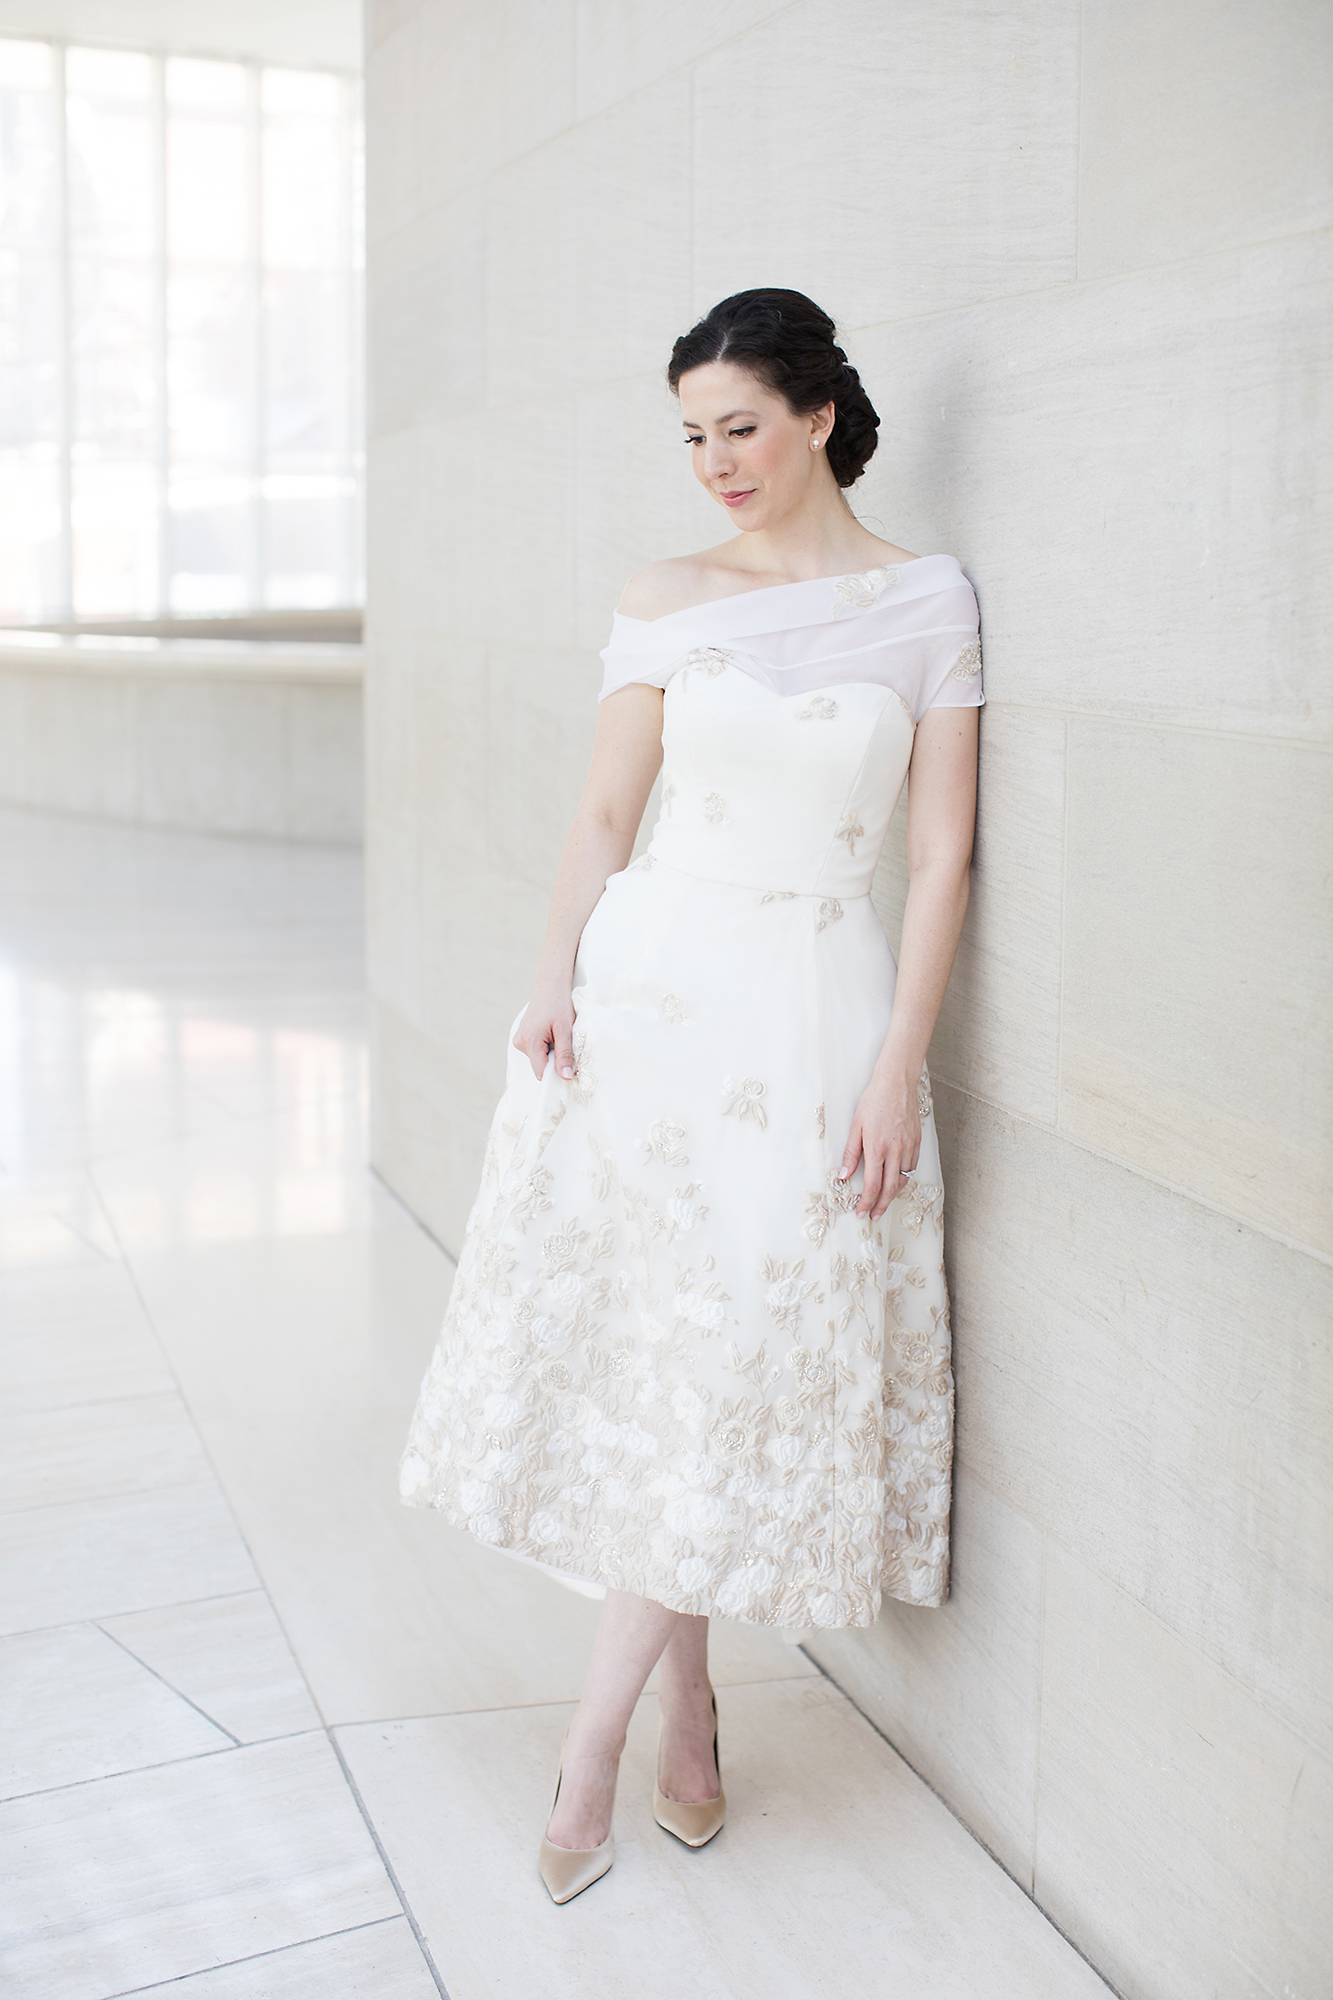 Reception Dresses Brides Changed Into For Their Parties Martha Stewart,Cinderella Coming To America Wedding Dress